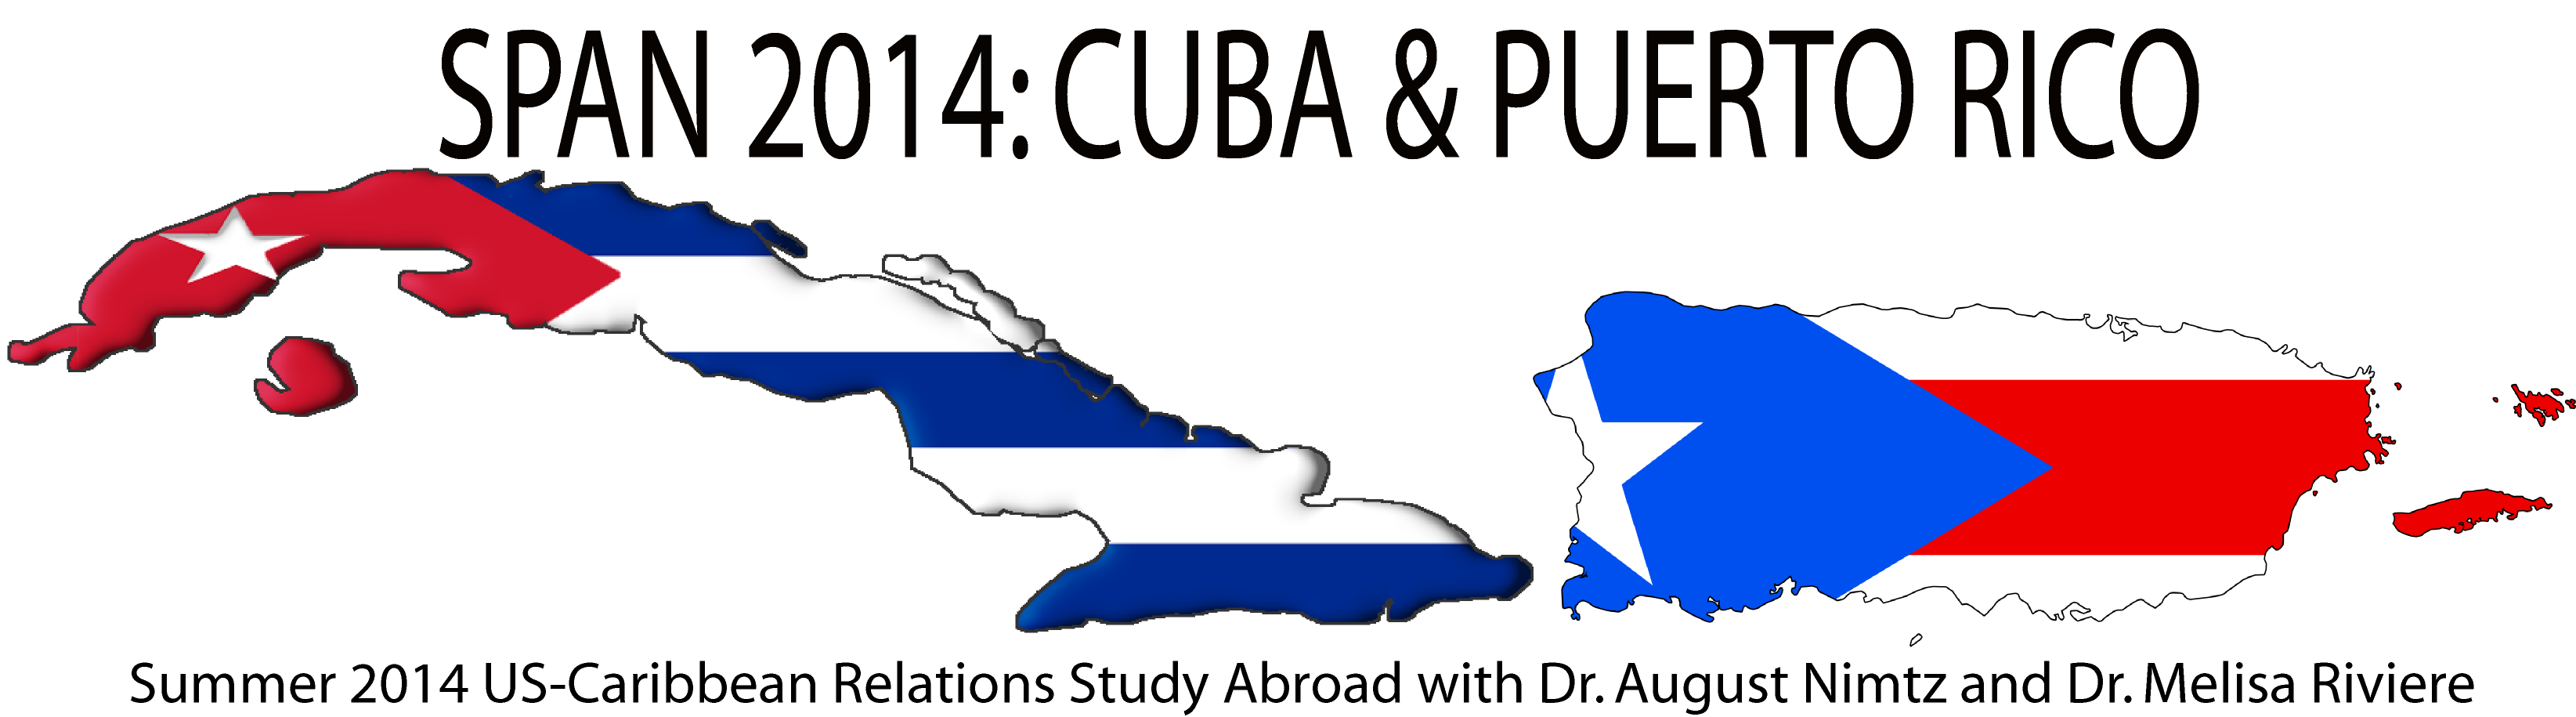 Puerto rico baseball clipart clipart free library SPAN 2014 Summer Study Abroad on US-Caribbean Relations in Cuba and ... clipart free library